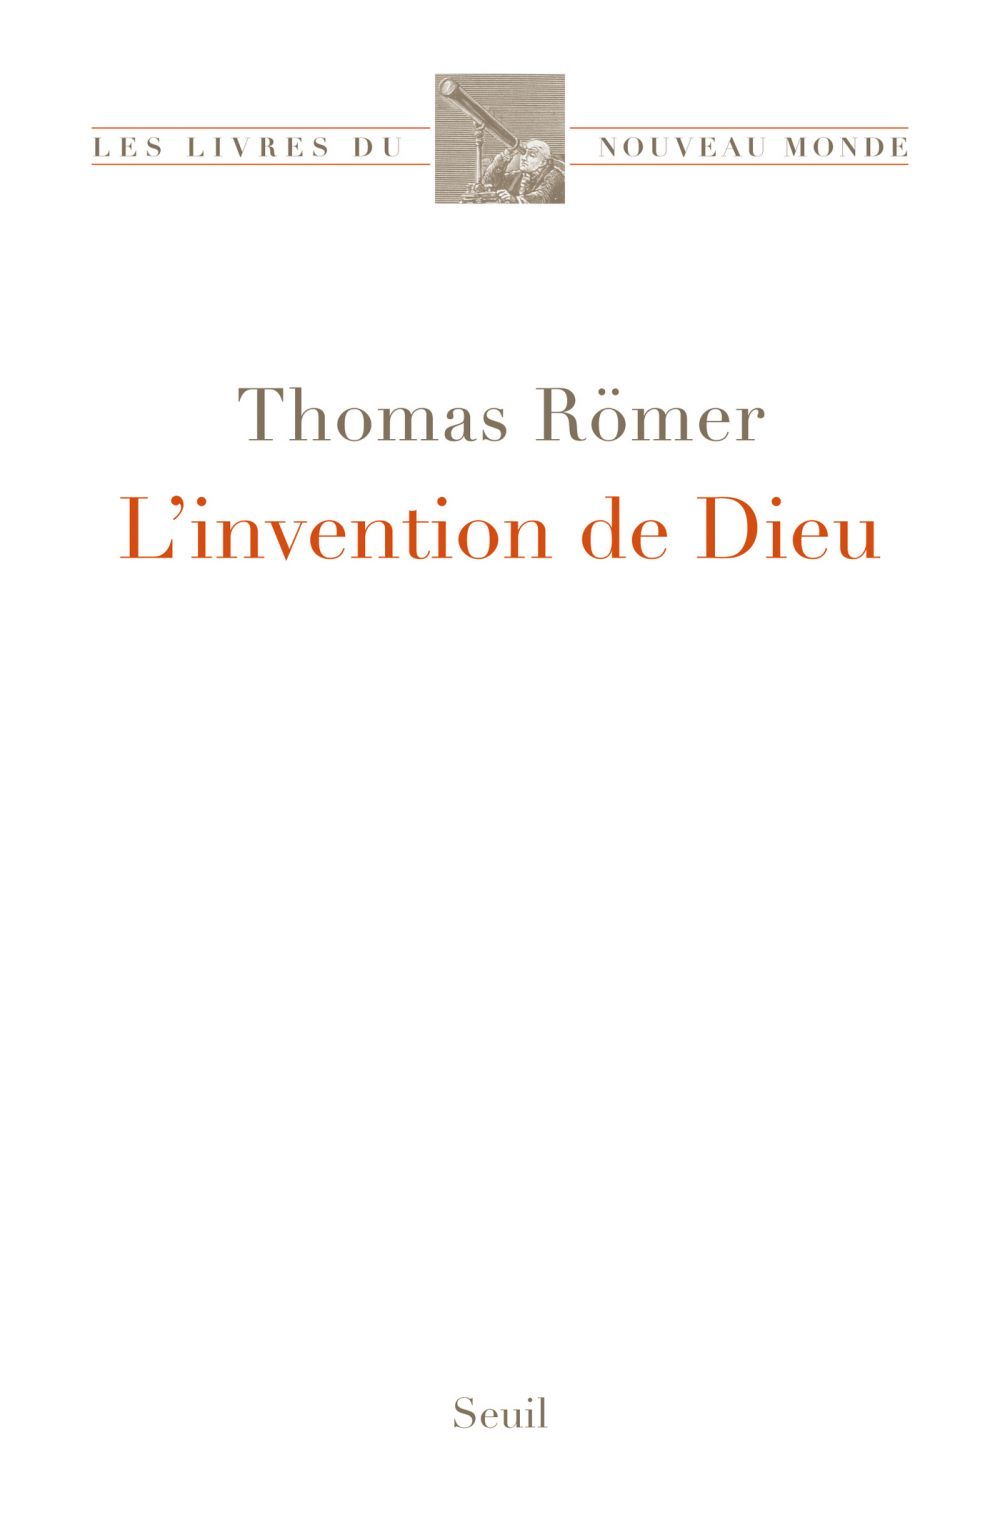 L'Invention de Dieu